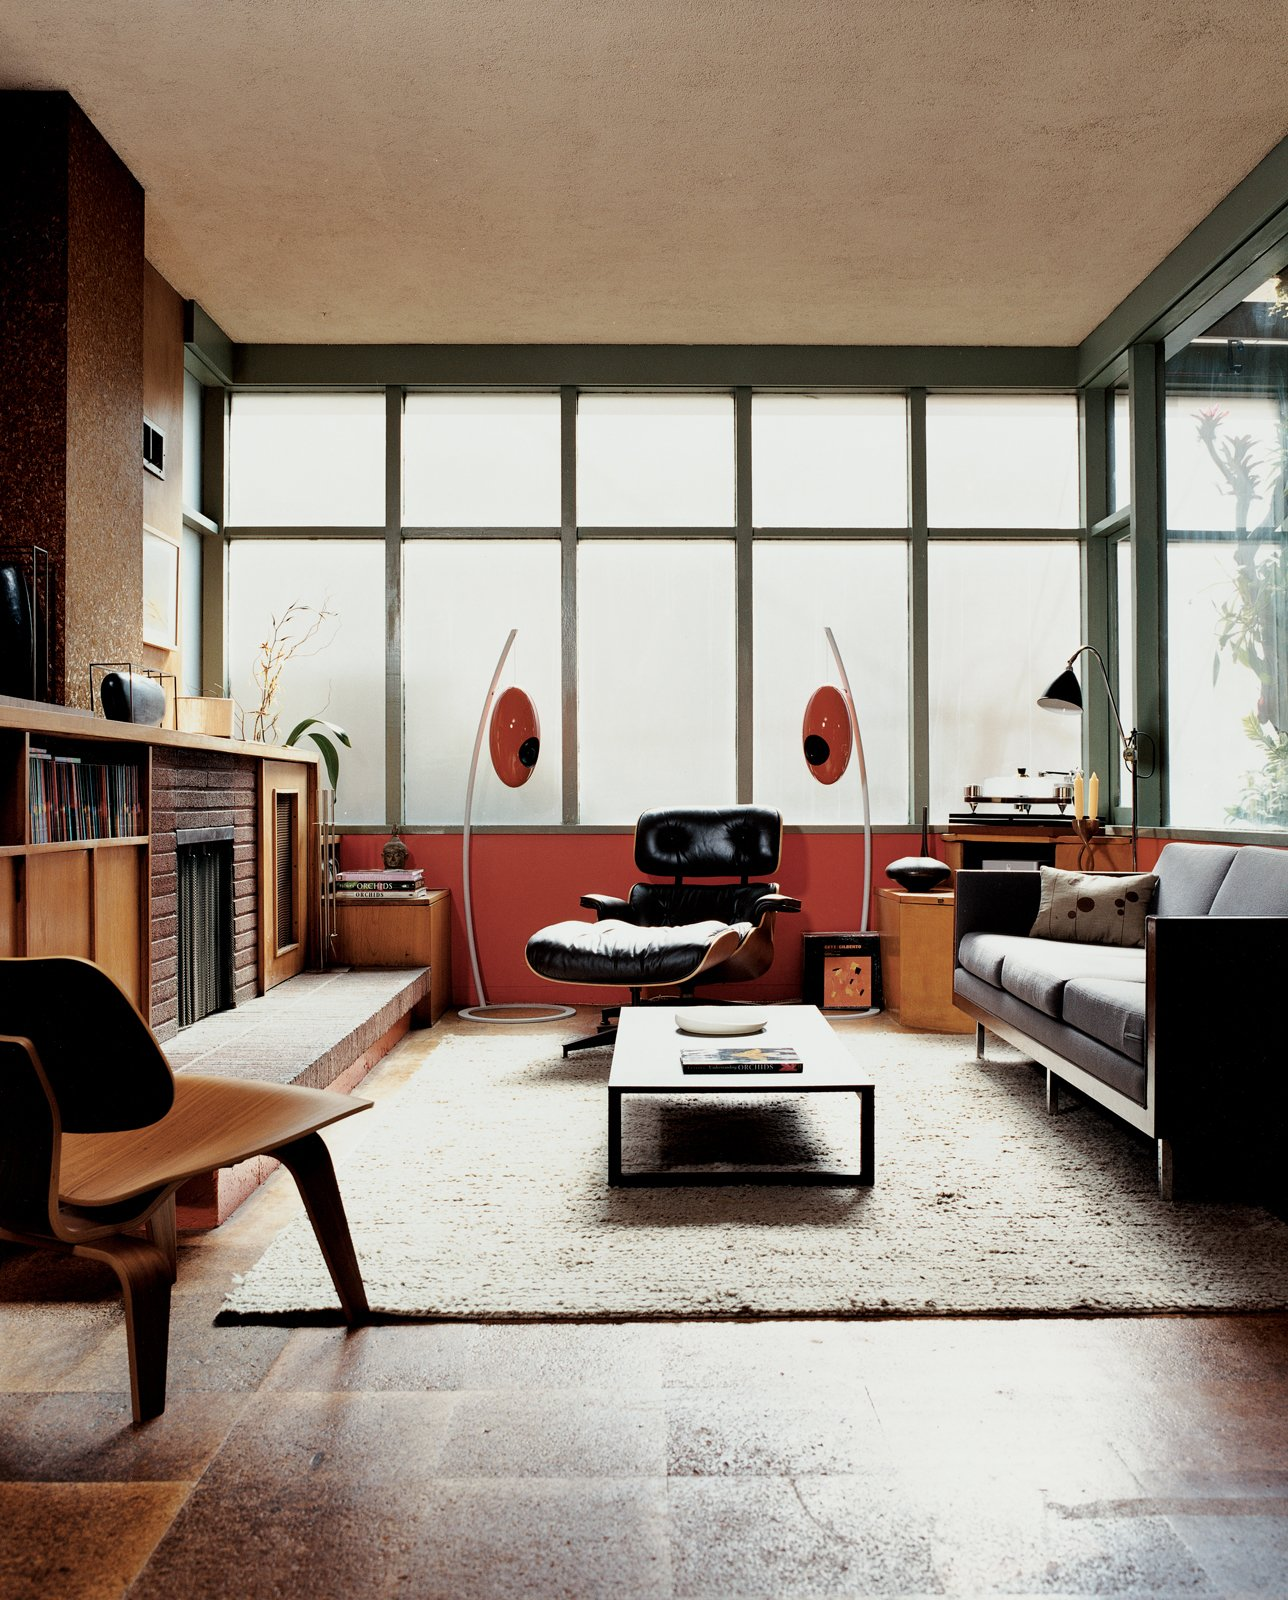 Living Room, Rug Floor, Coffee Tables, Standard Layout Fireplace, Sofa, Recliner, Lamps, Ottomans, Chair, End Tables, and Floor Lighting #midcenturymodern #Eames #HermanMiller #lounge #chair #livingrooms #U-vola #speakers #EliteAudioSystems #GretchenRice #KevinFarnham  Photo 32 of 54 in Eames Lounge Chair Porn